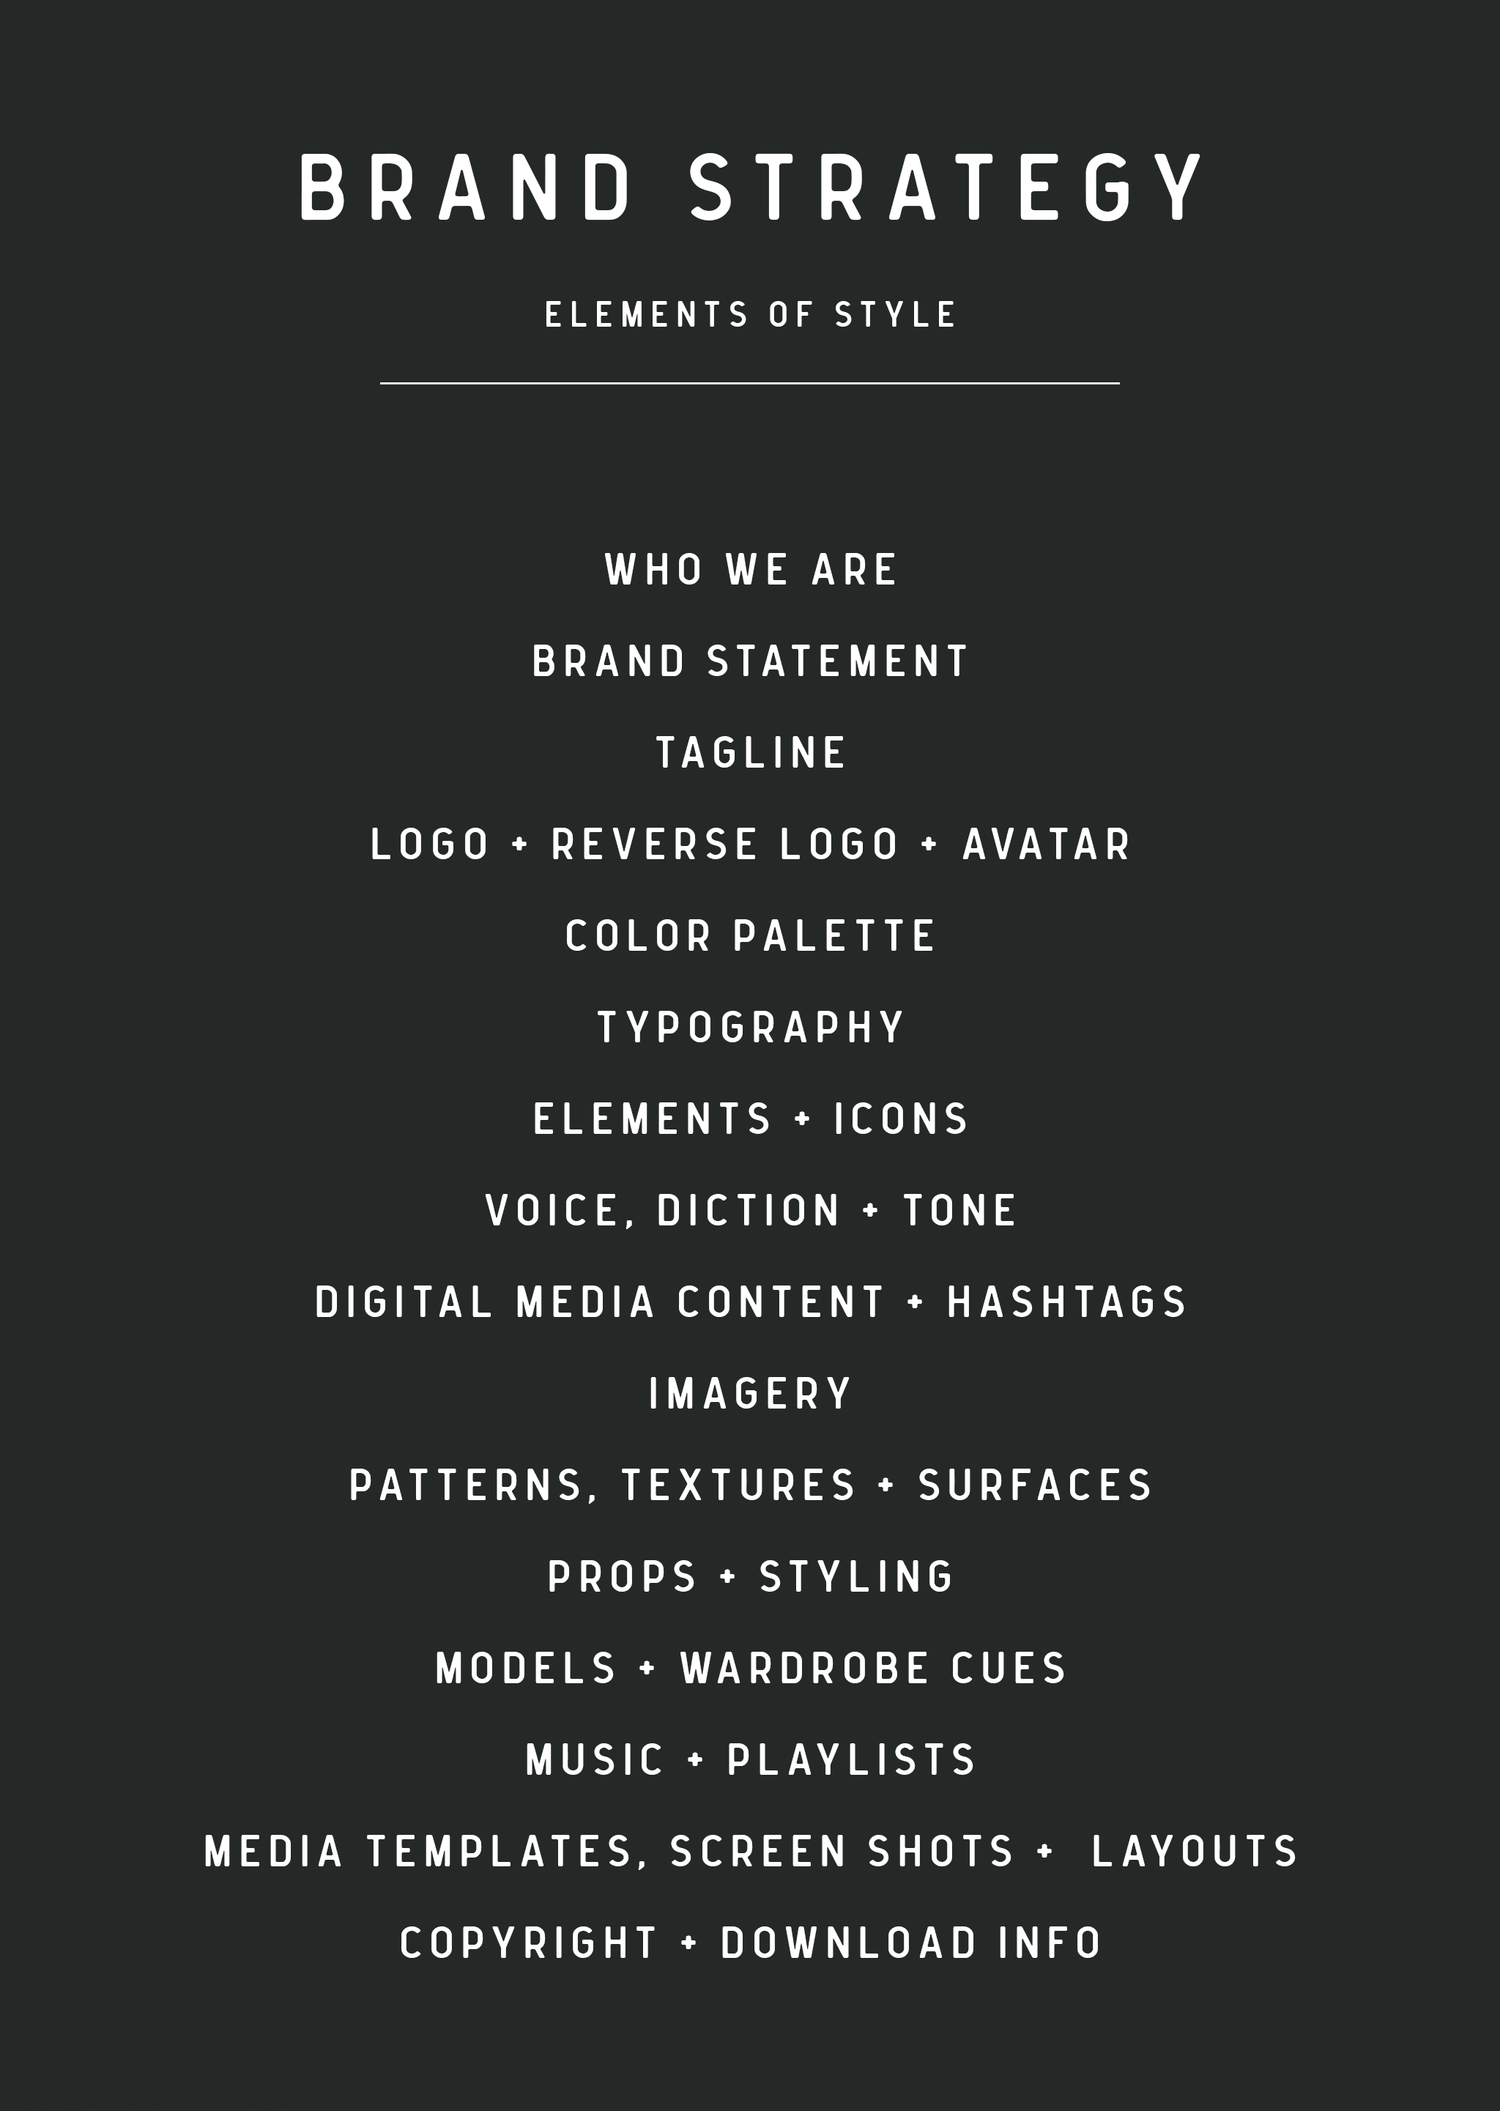 Brand Guidelines Elements Of Style Branding Your Business Business Branding Brand Guidelines